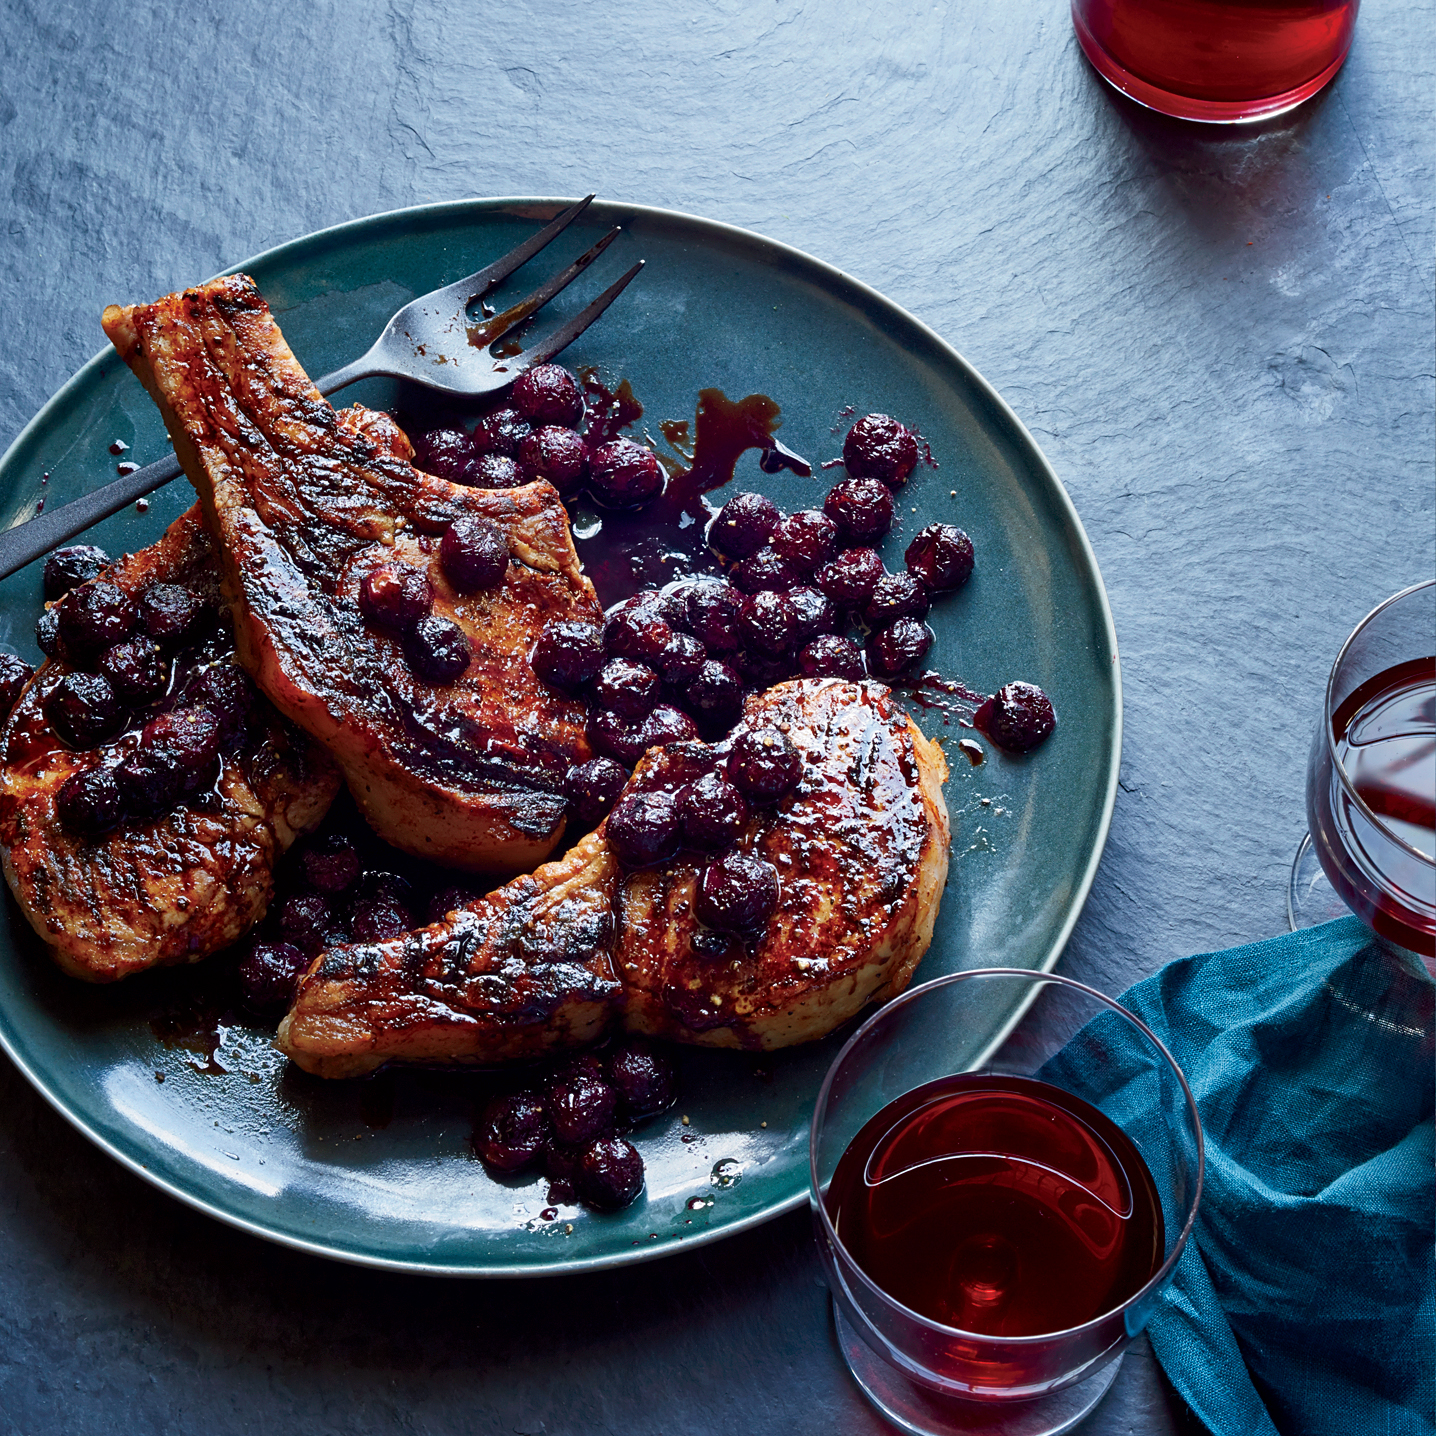 Grilled Pork Chops with Concord Grapes